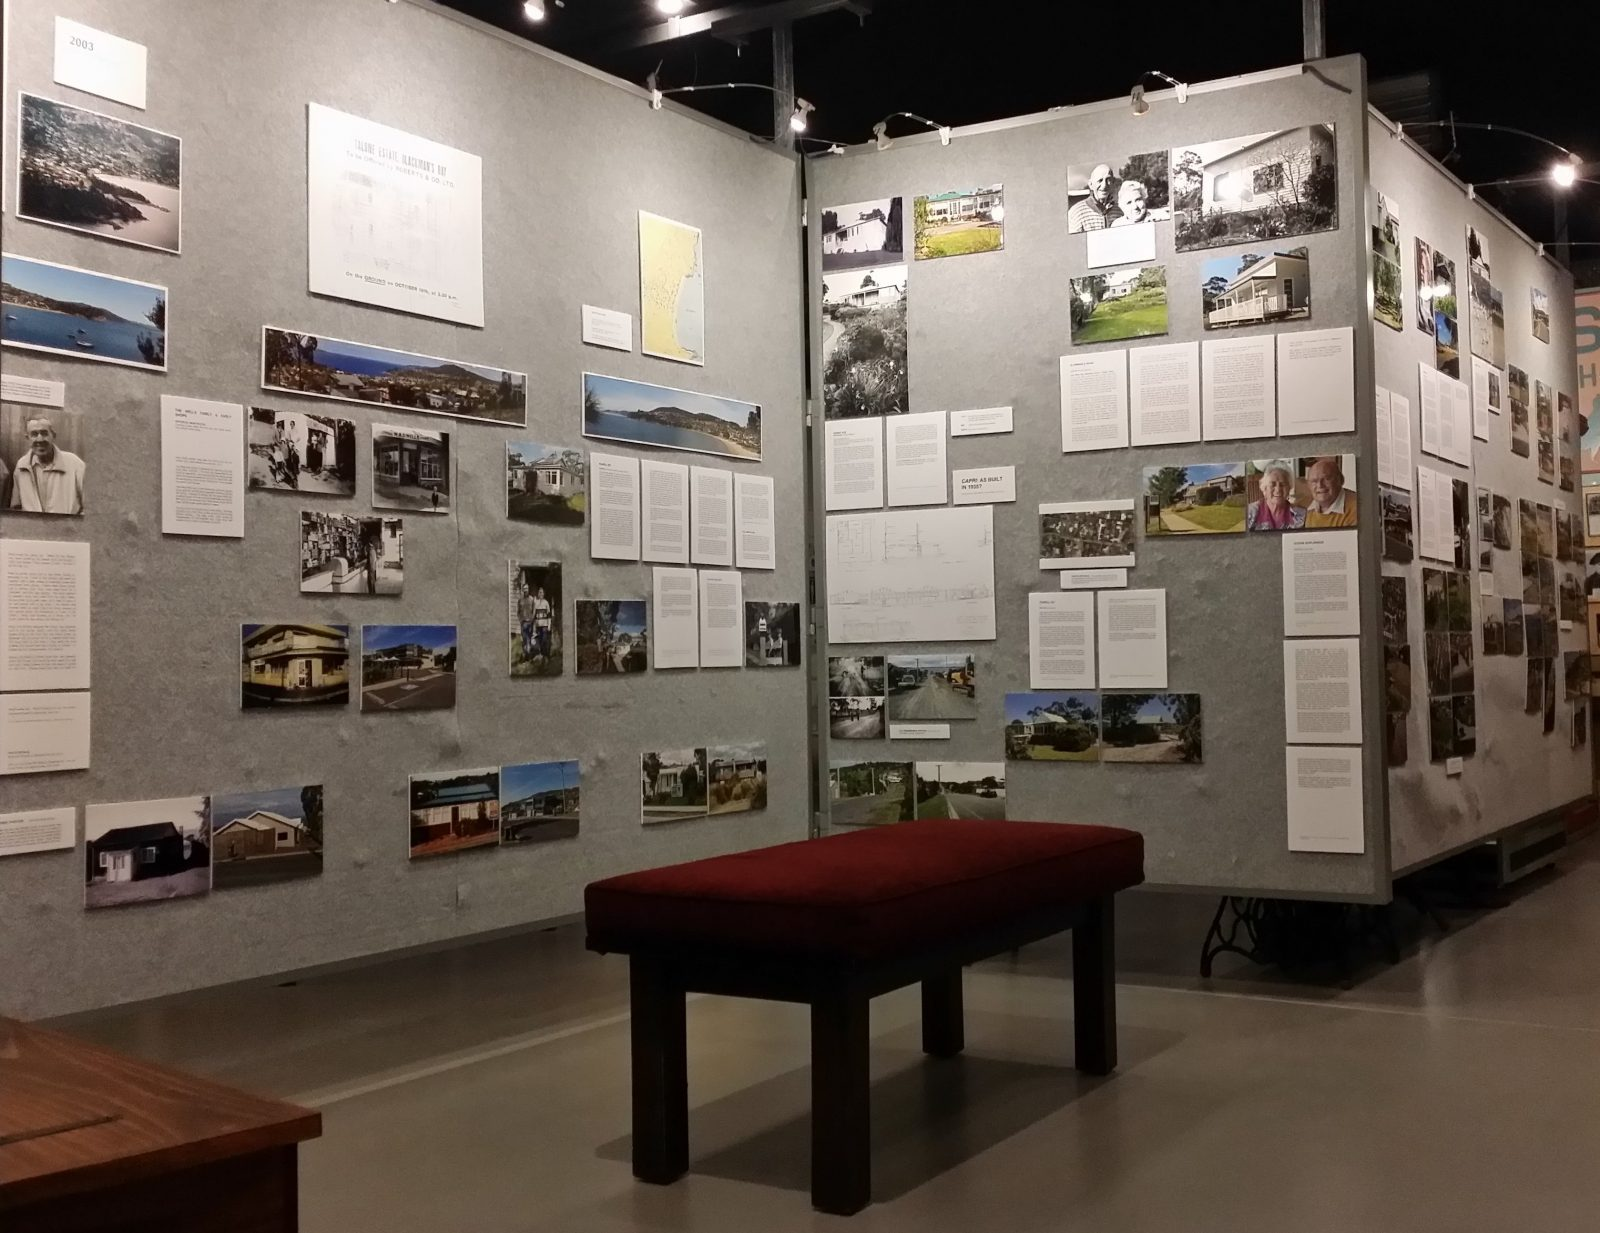 View of the display